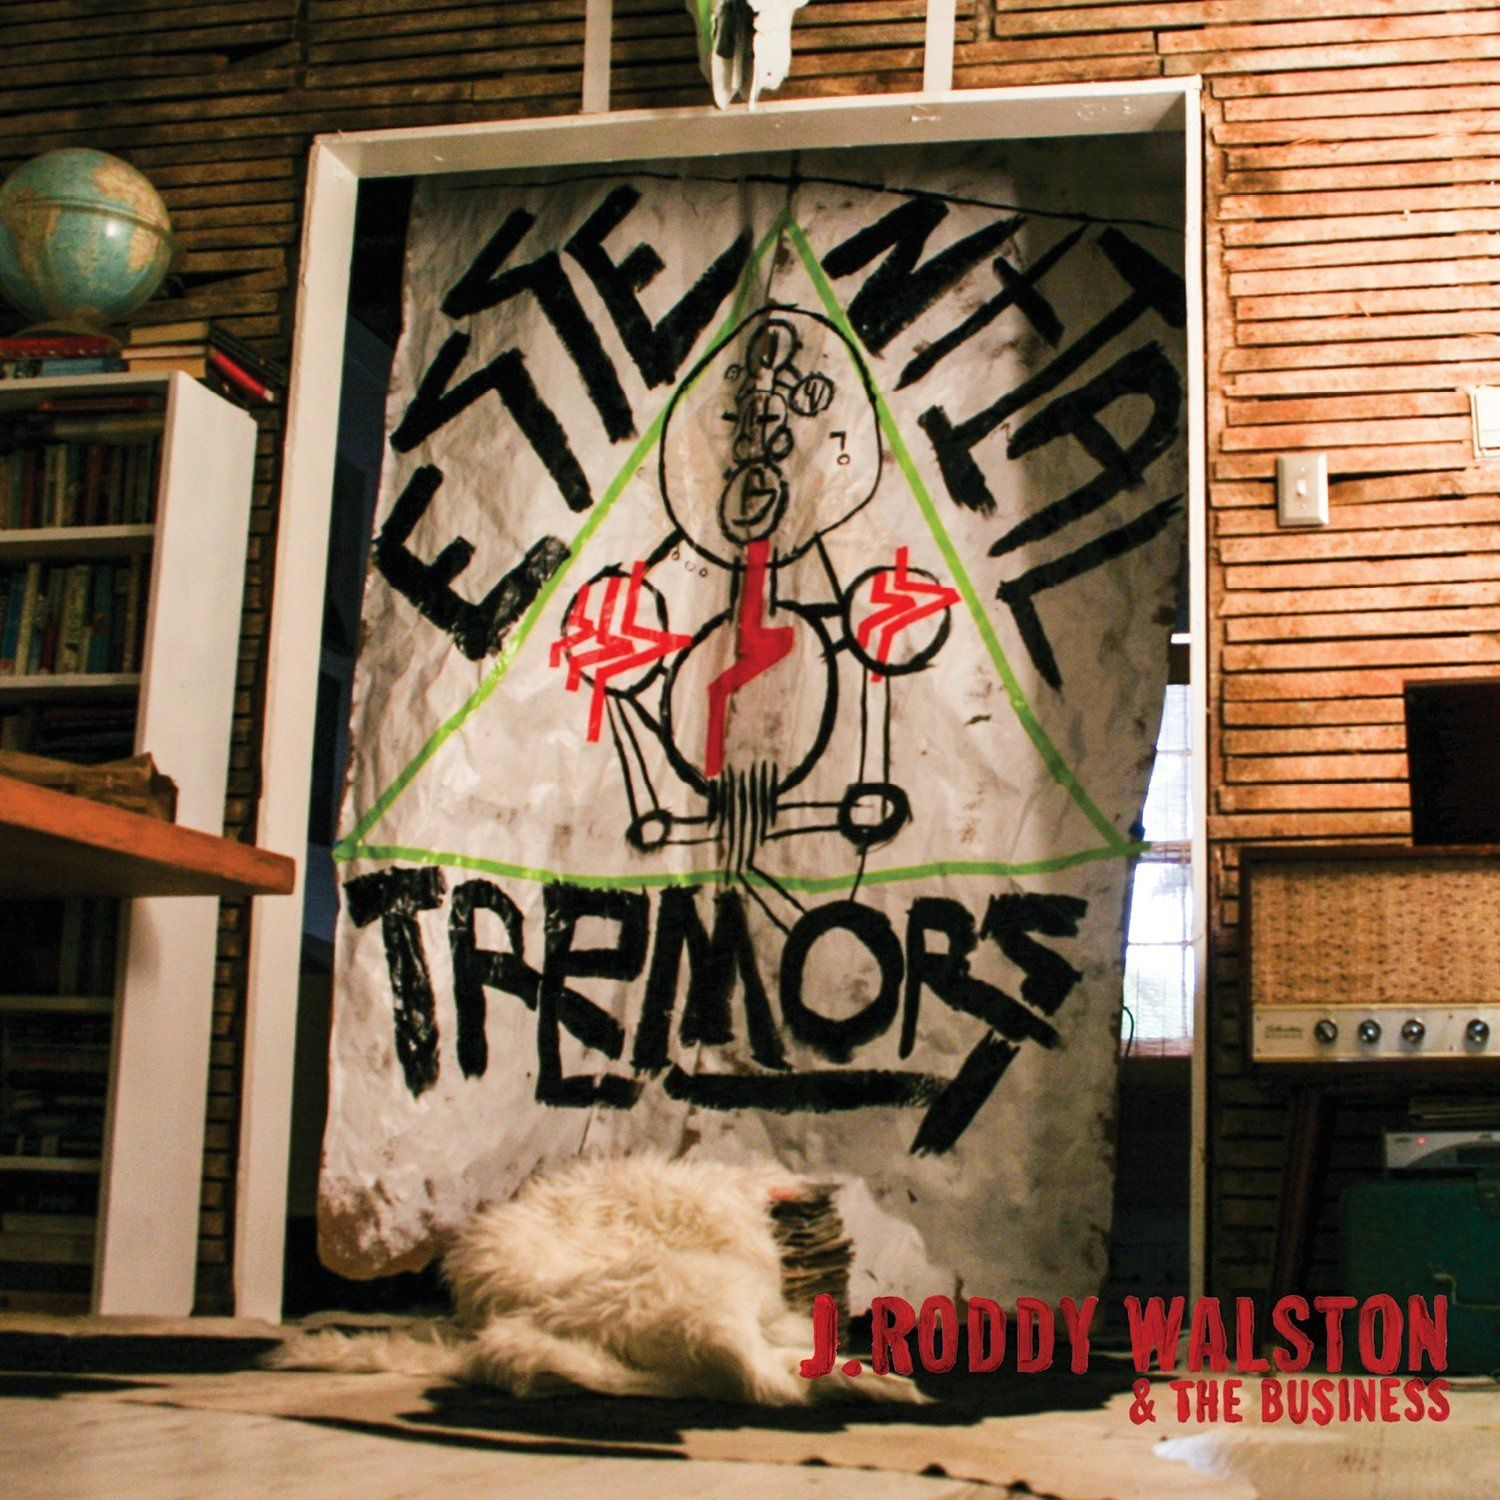 J. RODDY WALSTON AND THE BUSINESS - Essential tremors (2014)